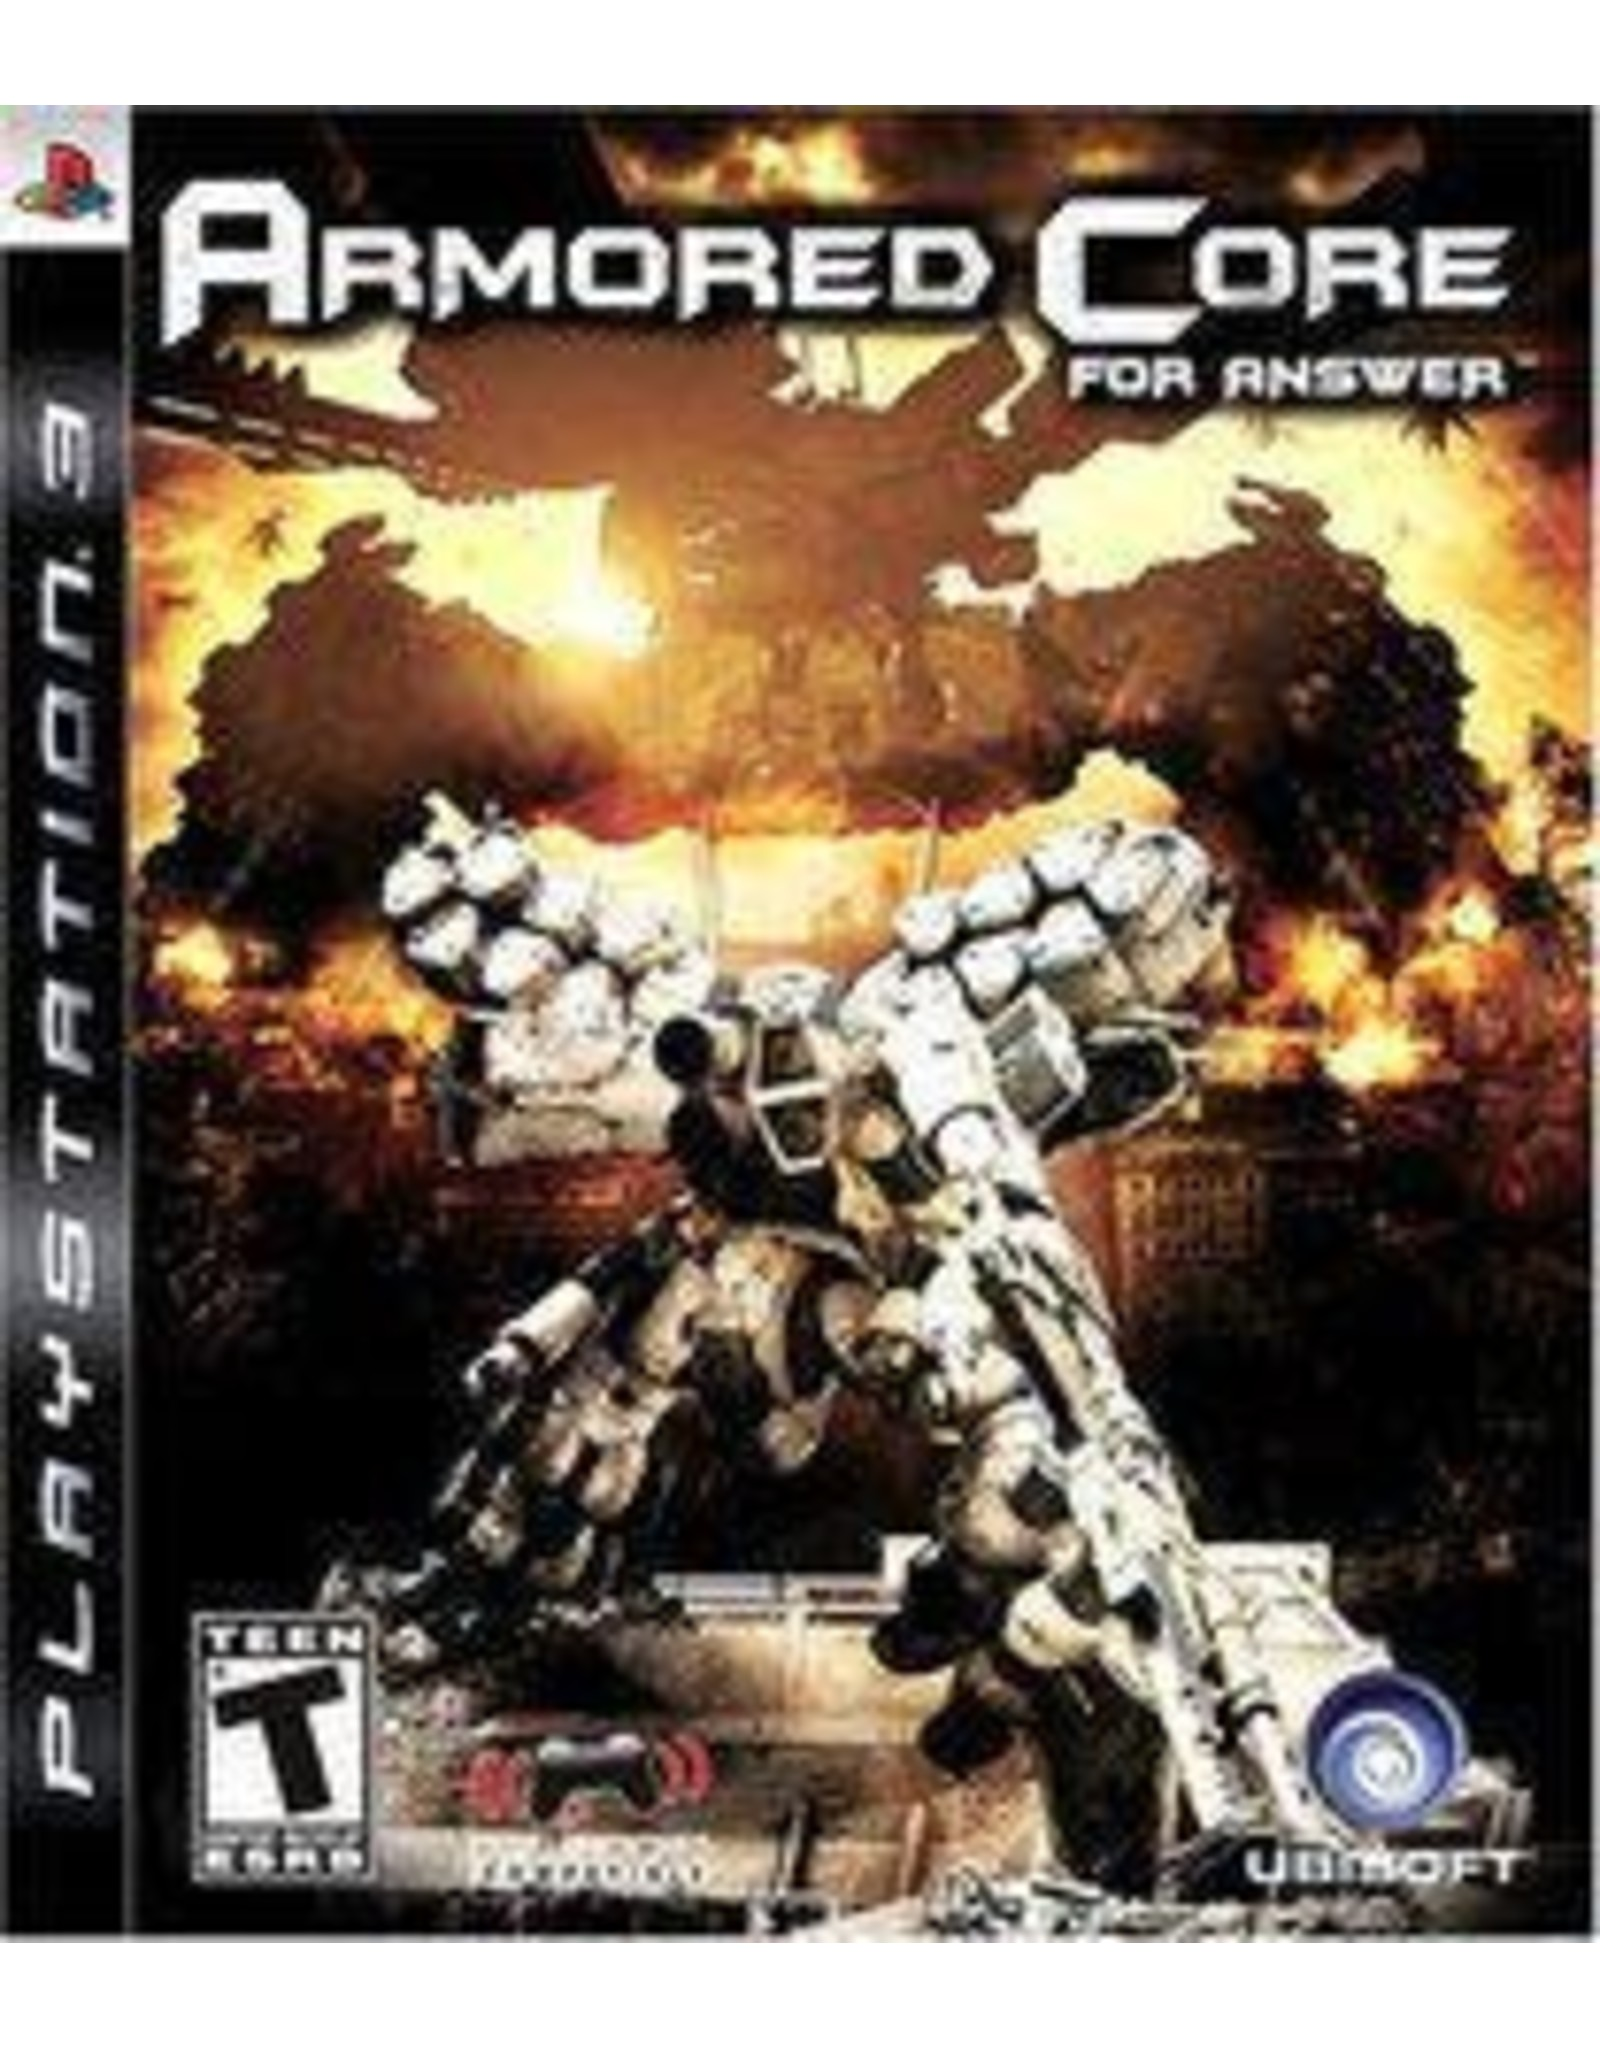 Playstation 3 Armored Core For Answer (CiB)